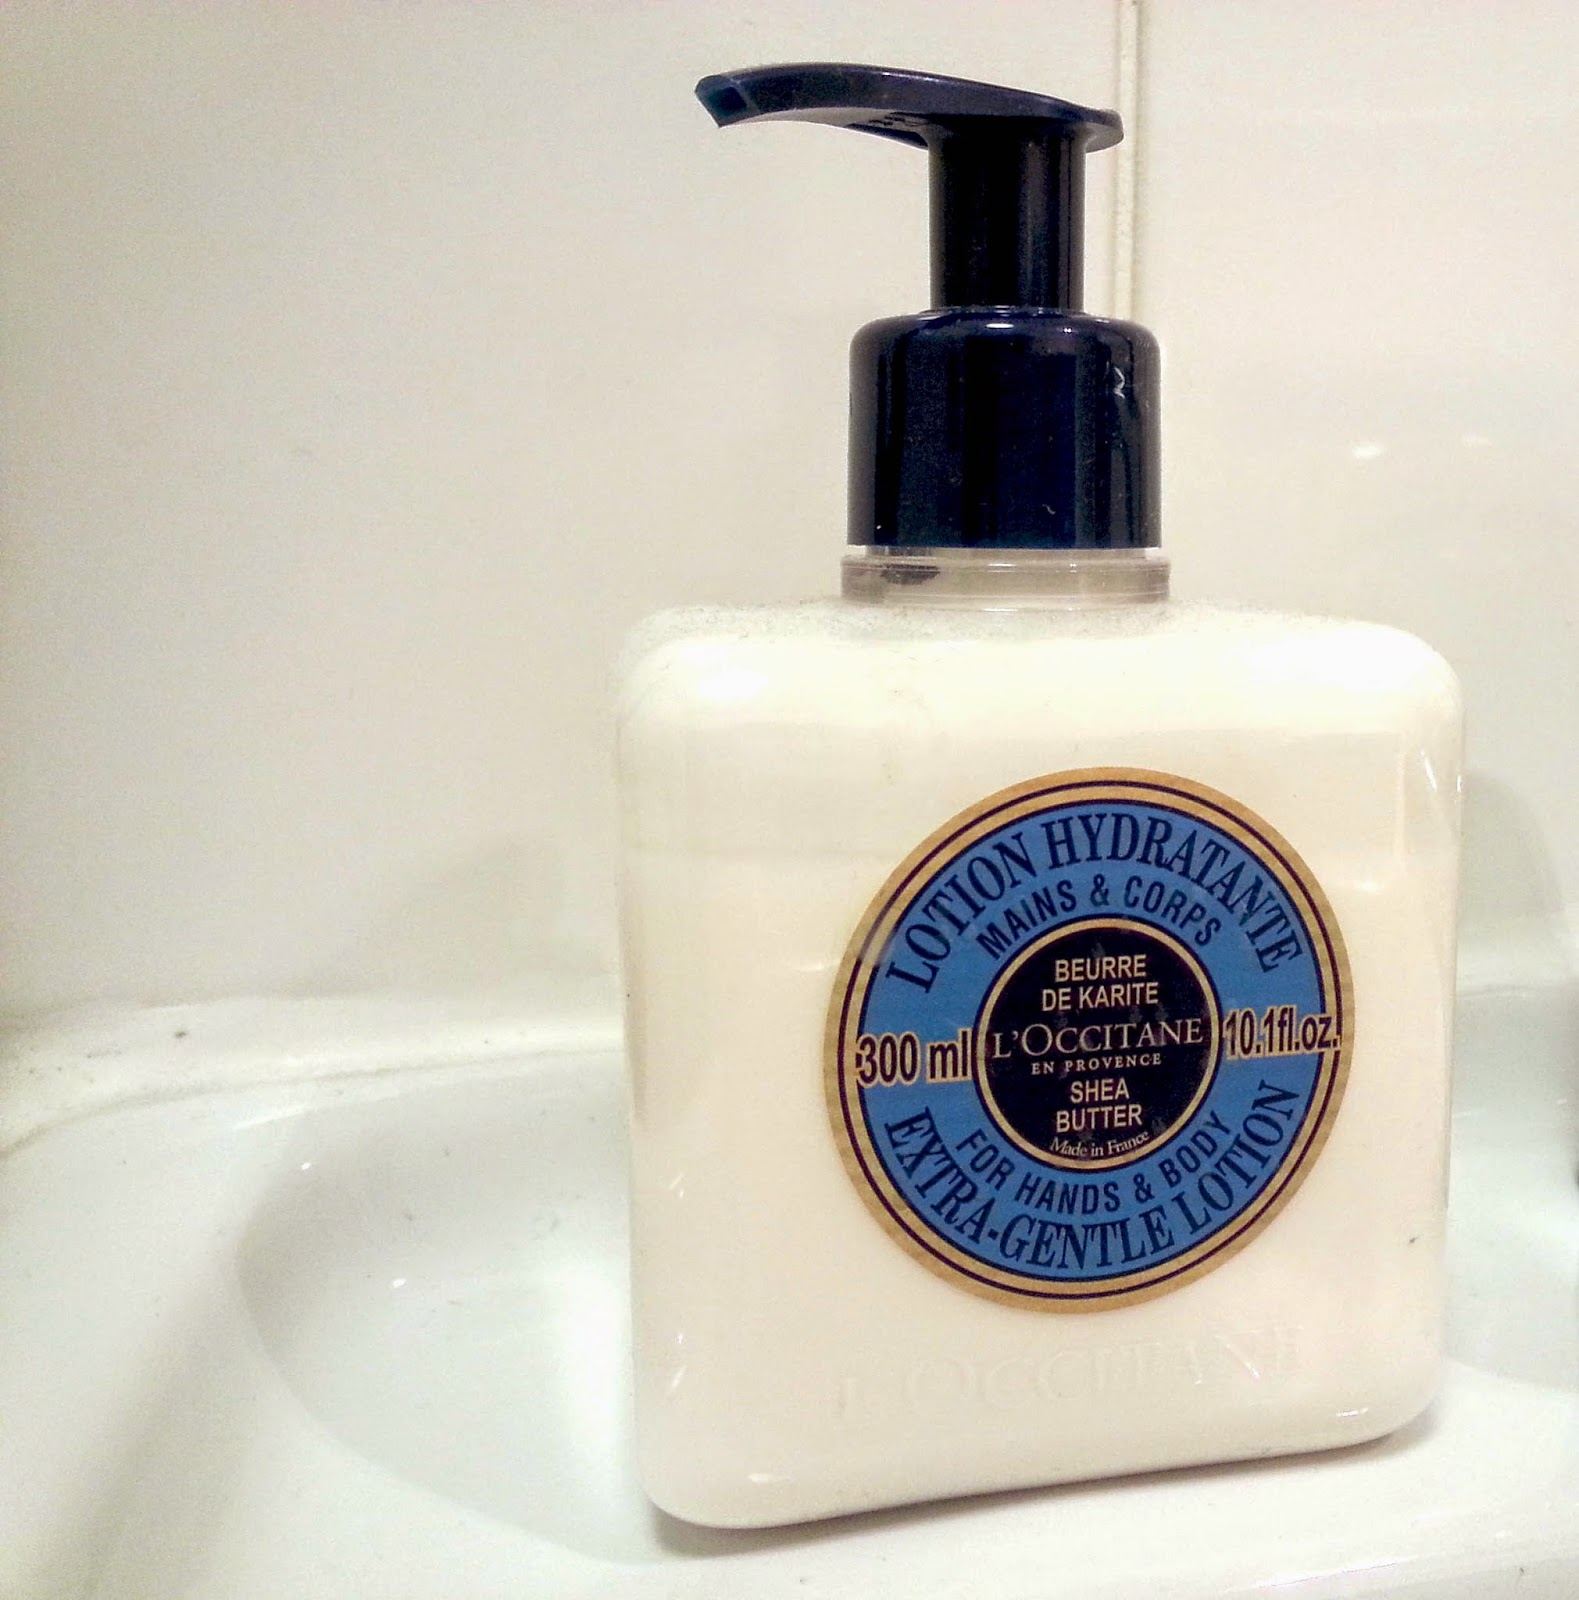 L'Occitane Extra Gentle Shea Butter Lotion For Hands & Body Review